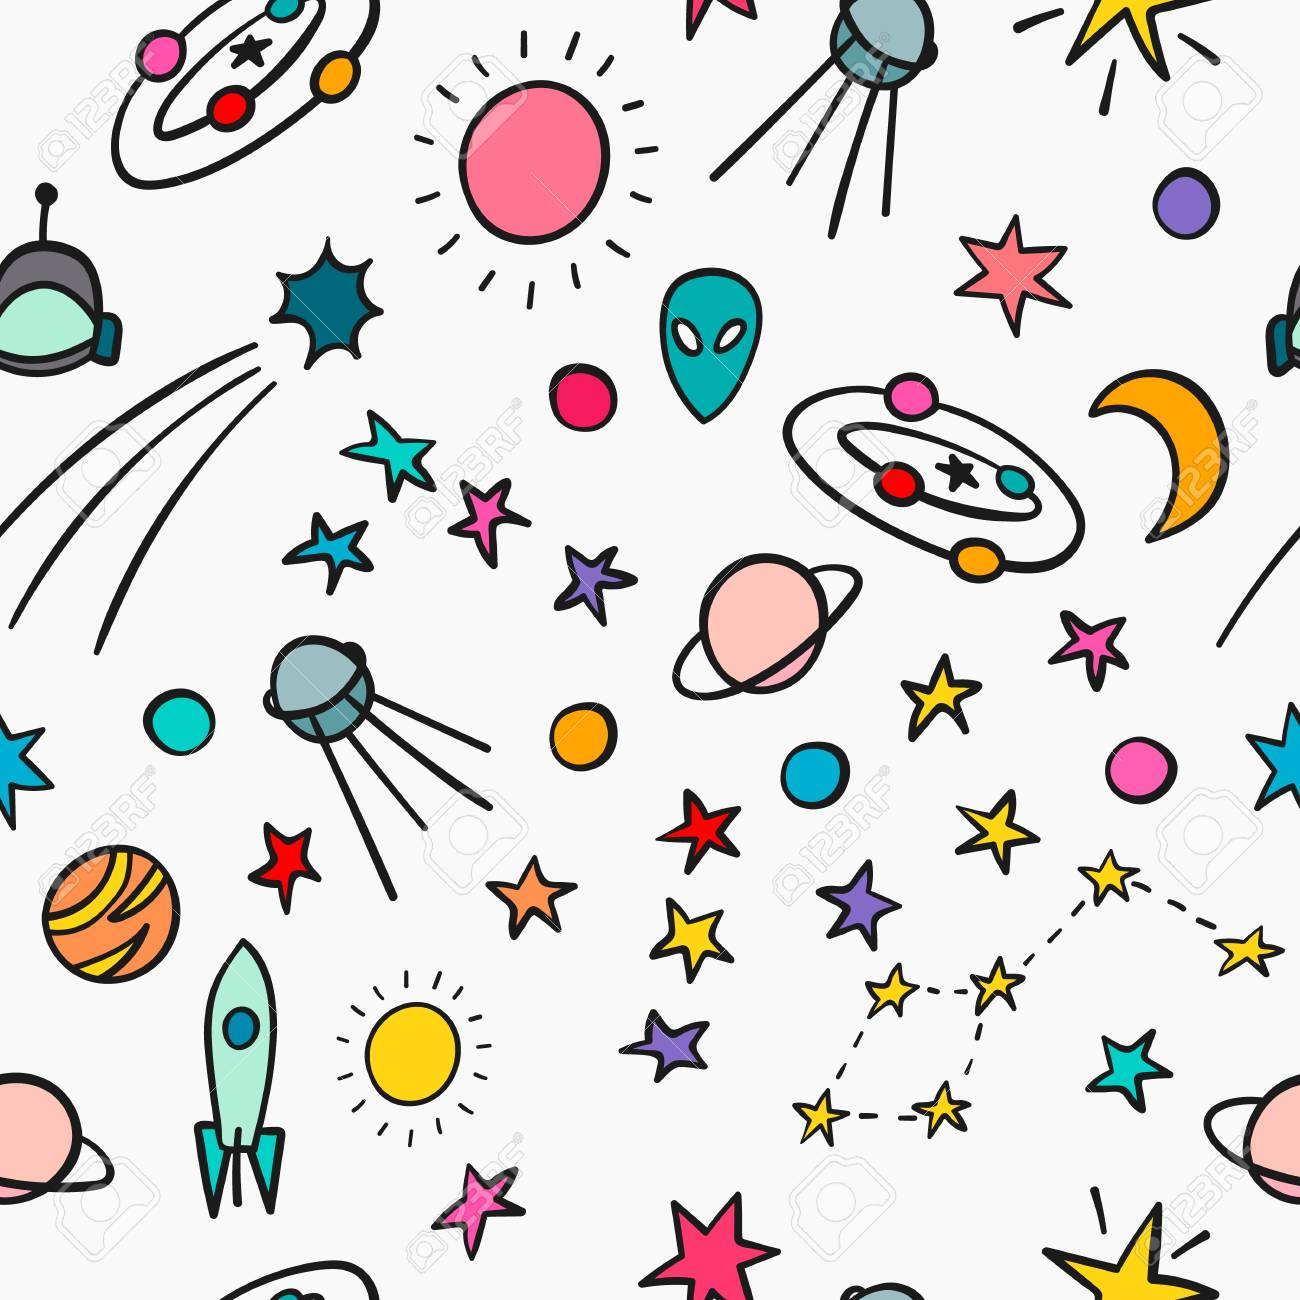 Free drawn simple download. Galaxy clipart artistic